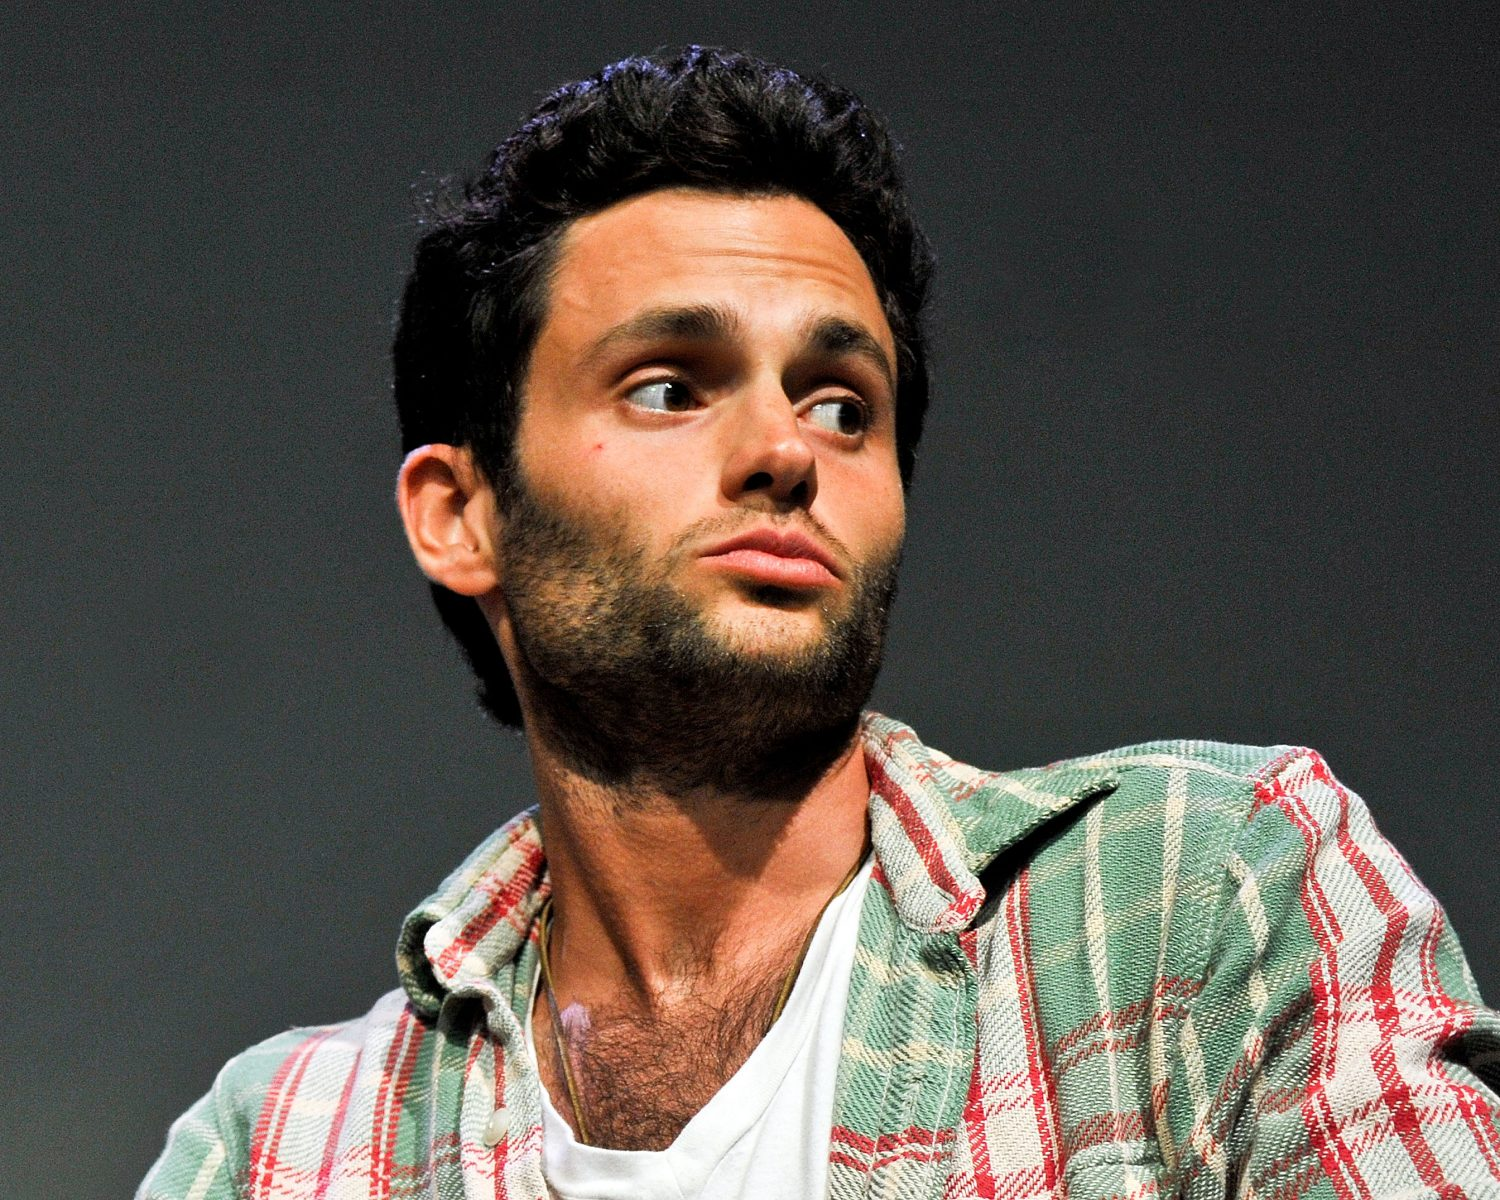 Penn Badgley S Wife Shares Intimate Wedding Photo Of First Kiss